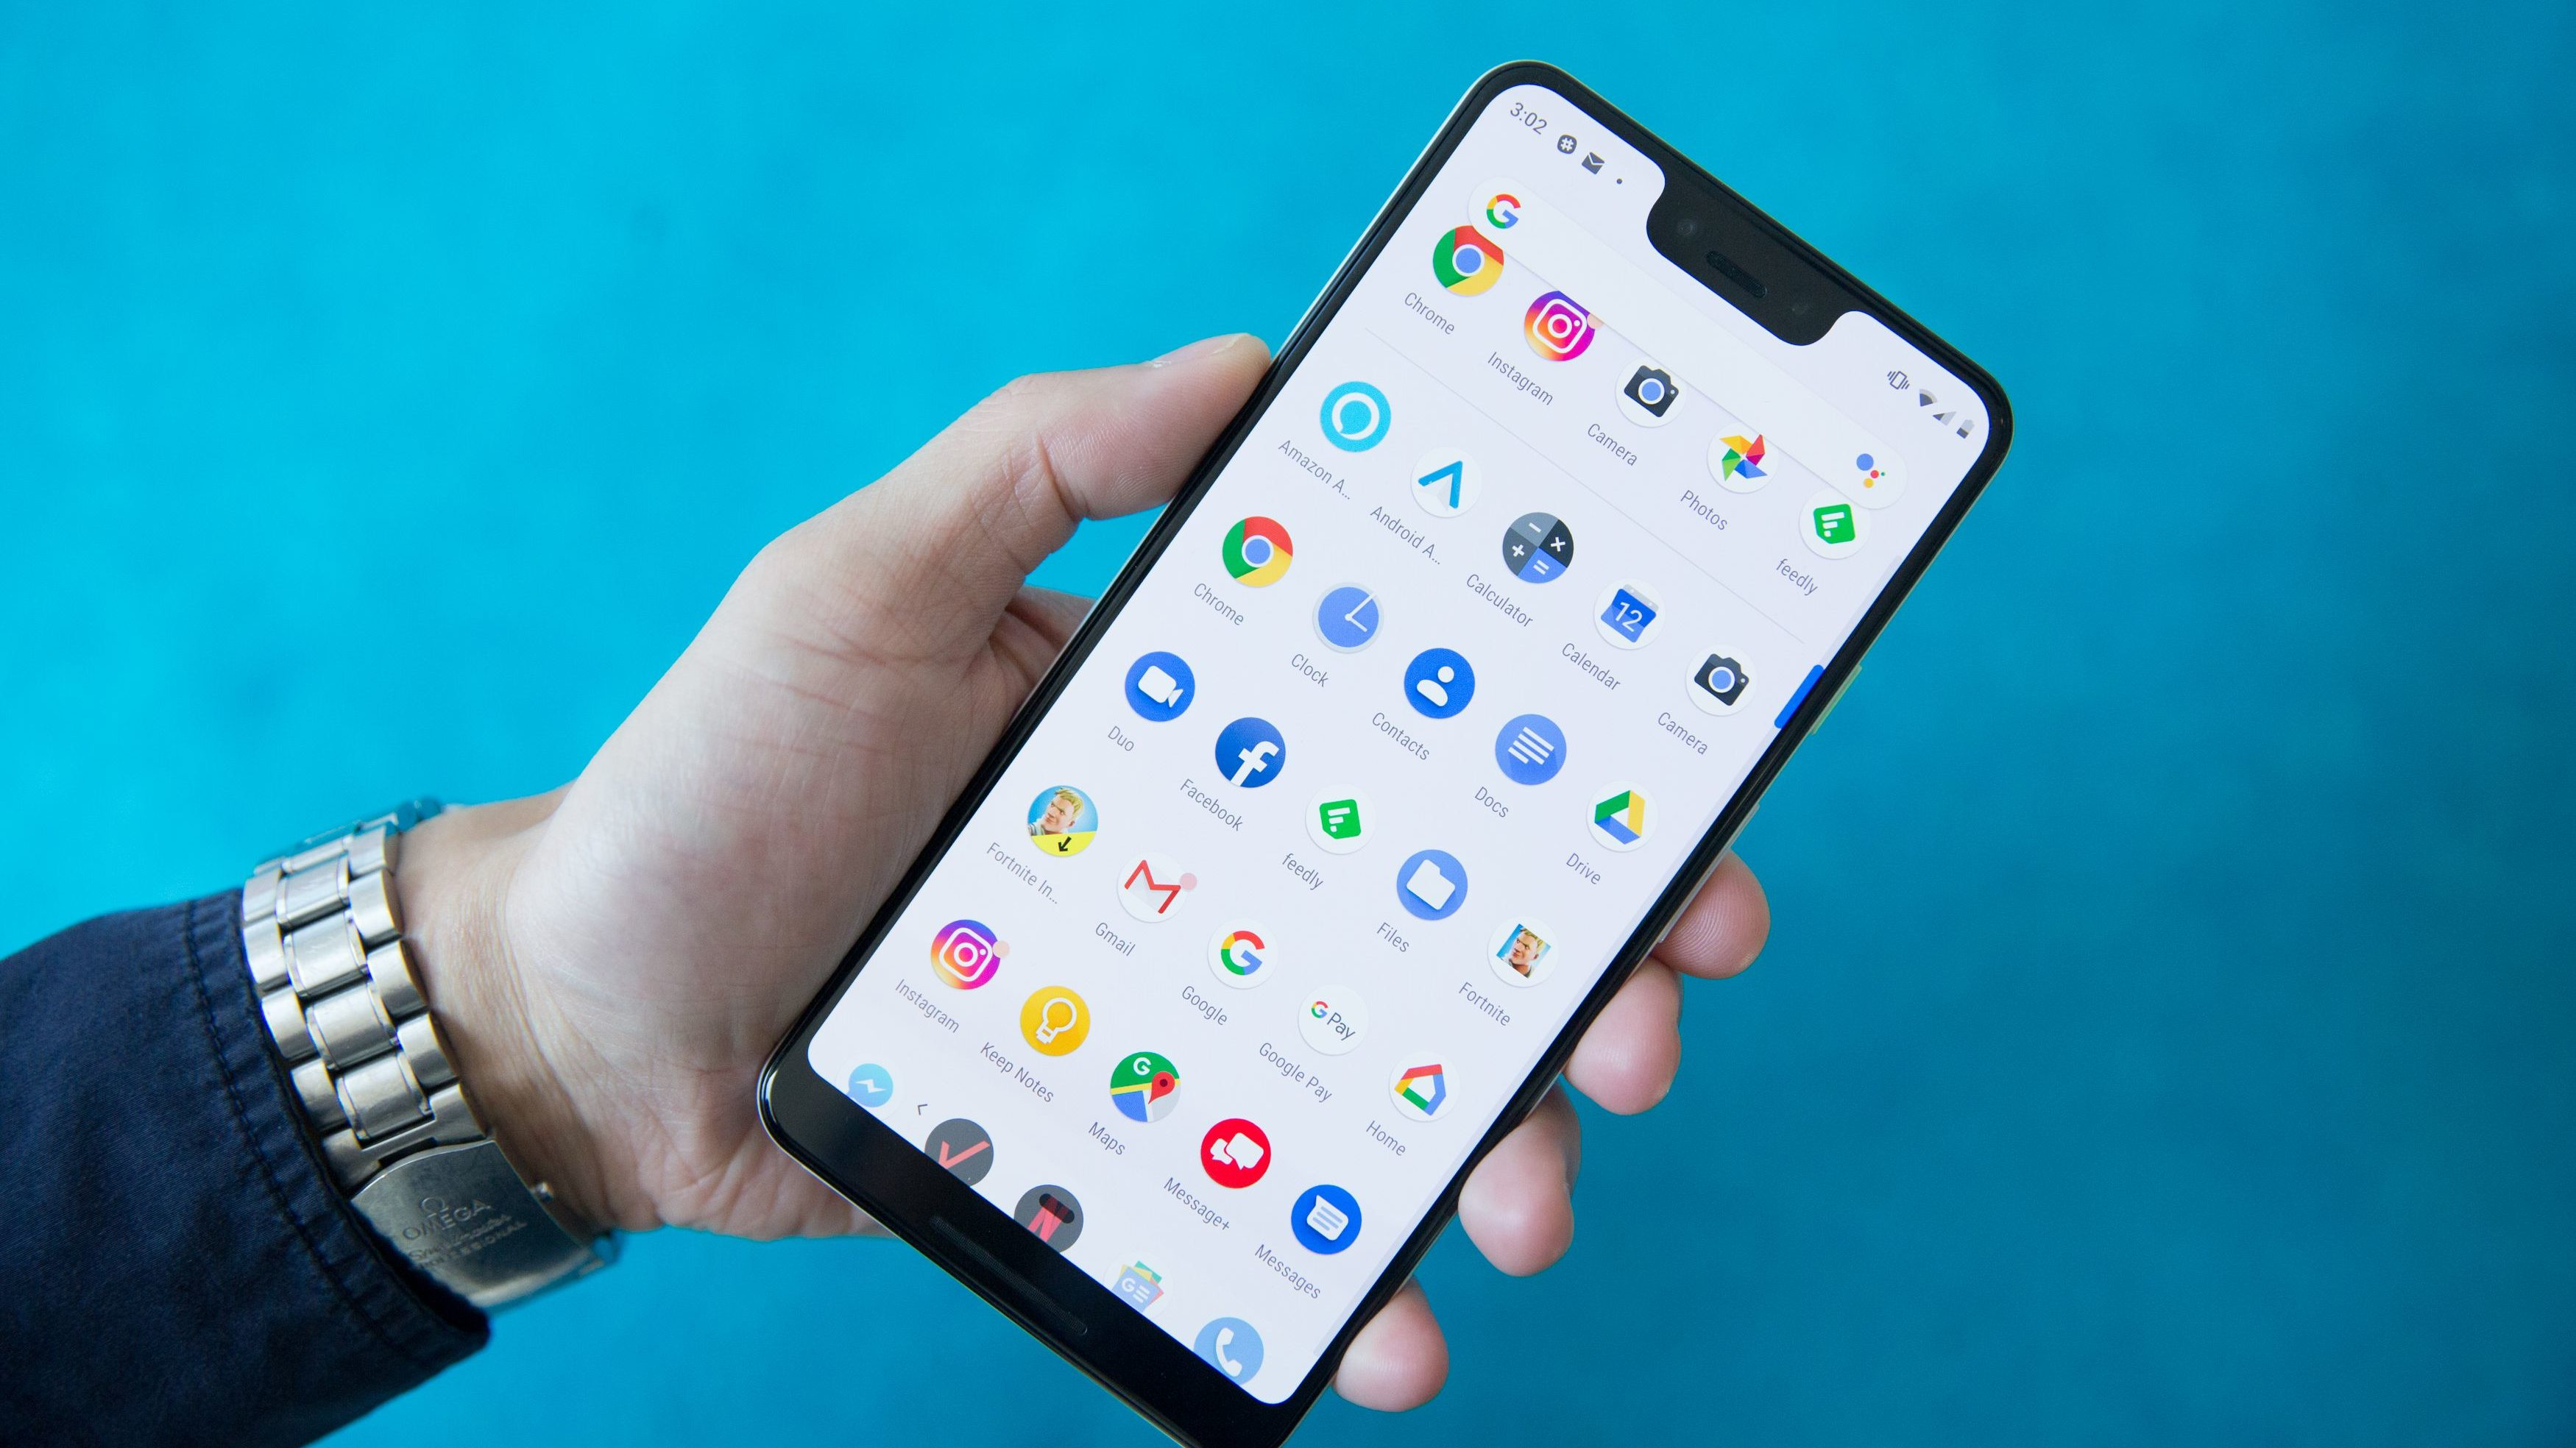 Android 9 Pie release date Update